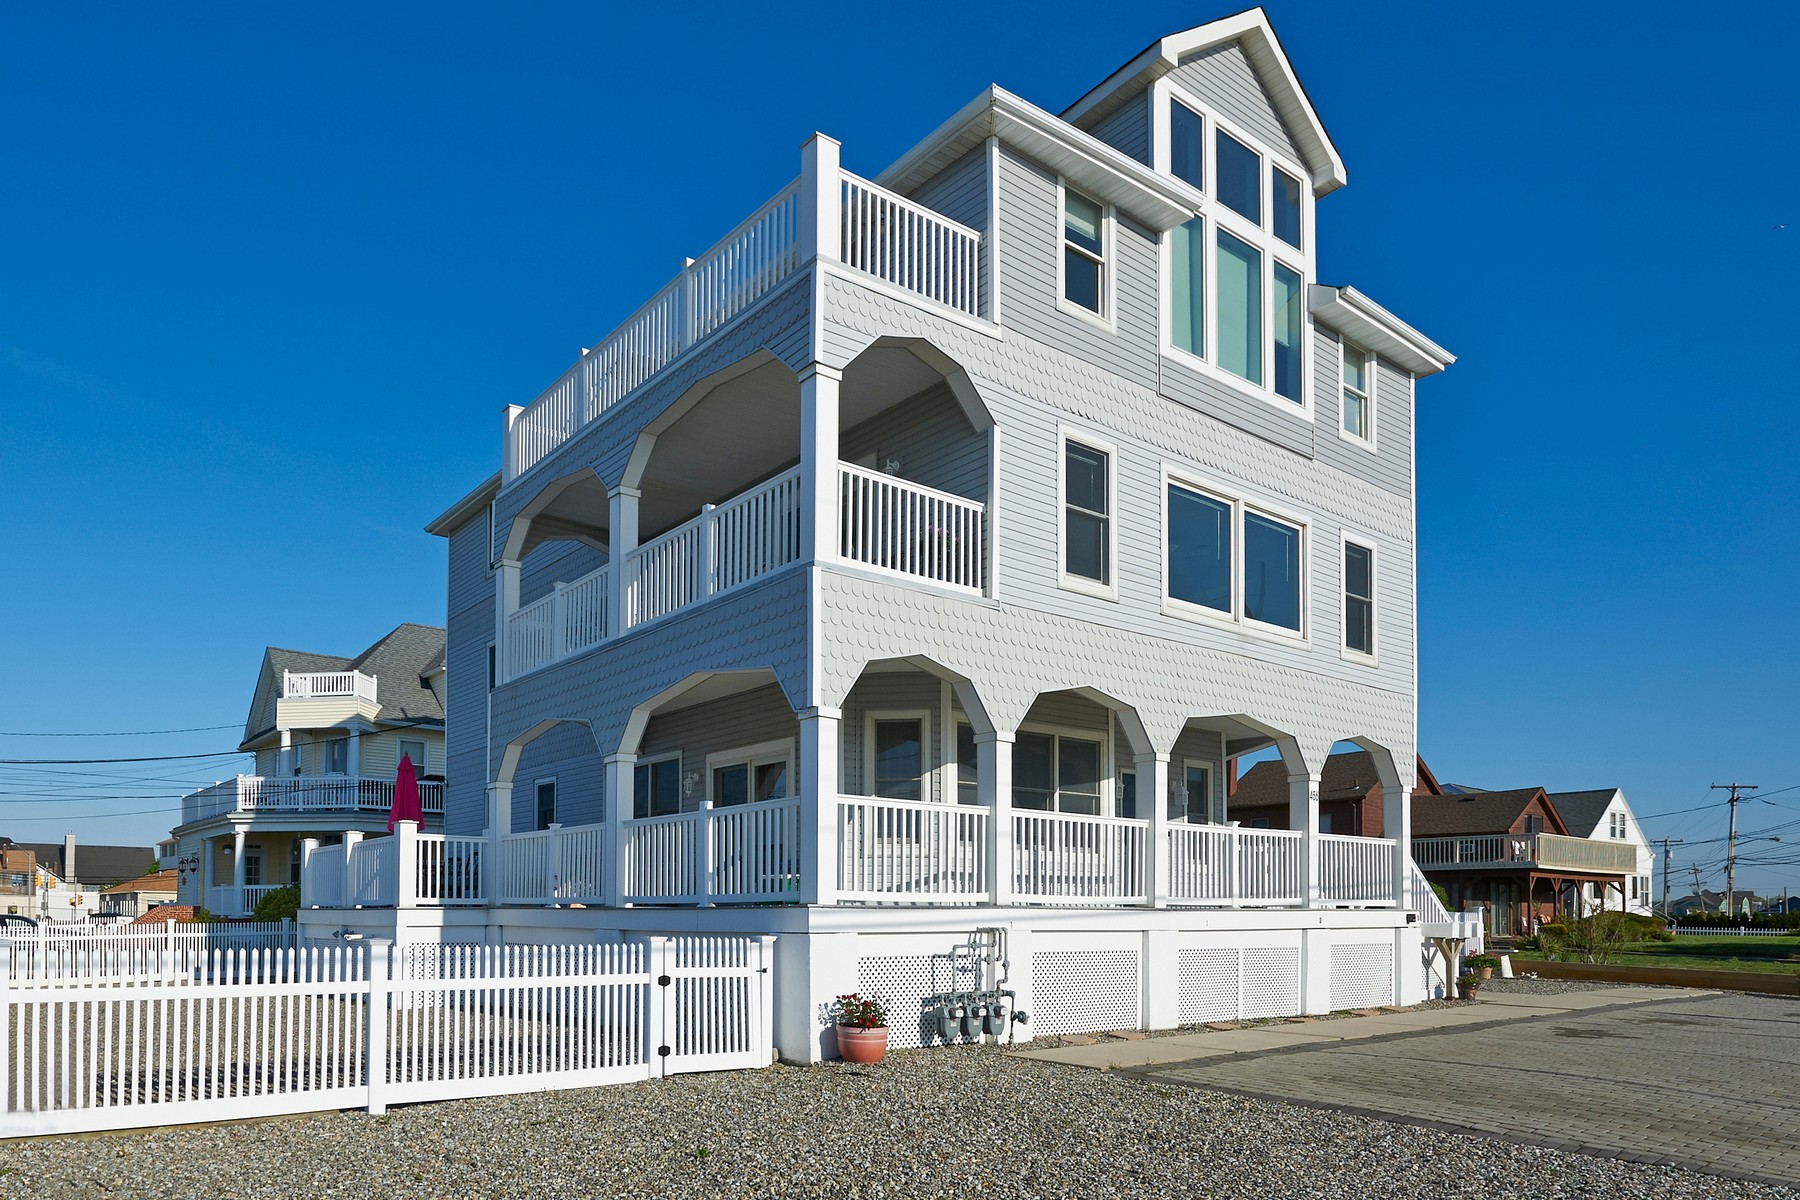 Single Family Home for Sale at Awesome Oceanfront! 456 Ocean Ave Long Branch, New Jersey 07740 United States